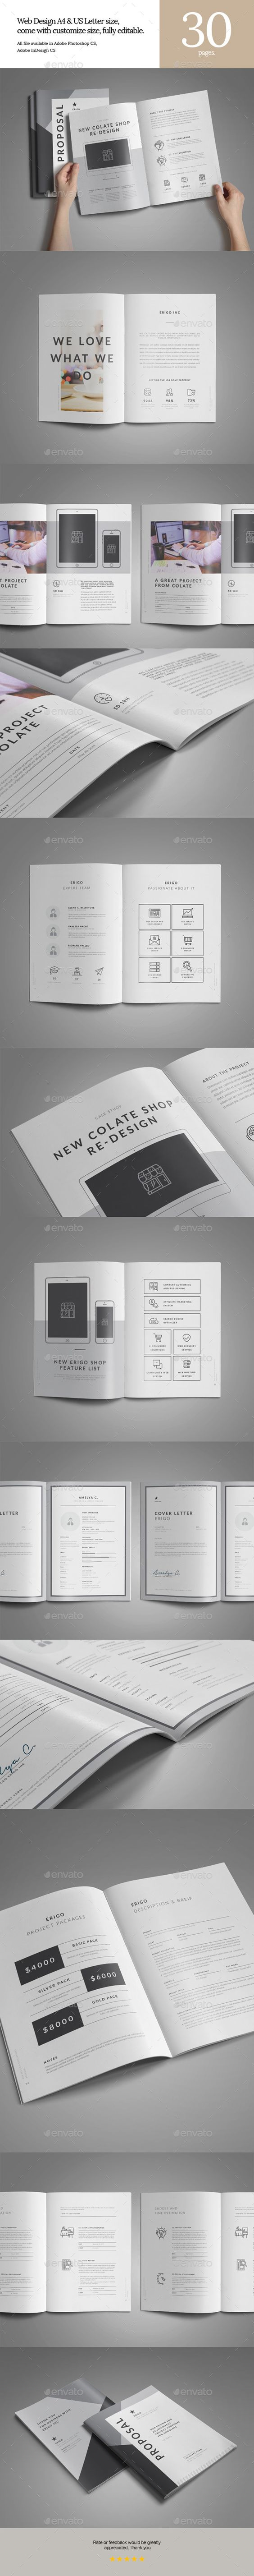 Web Design Proposal | Stationery templates, Proposals and Yellow